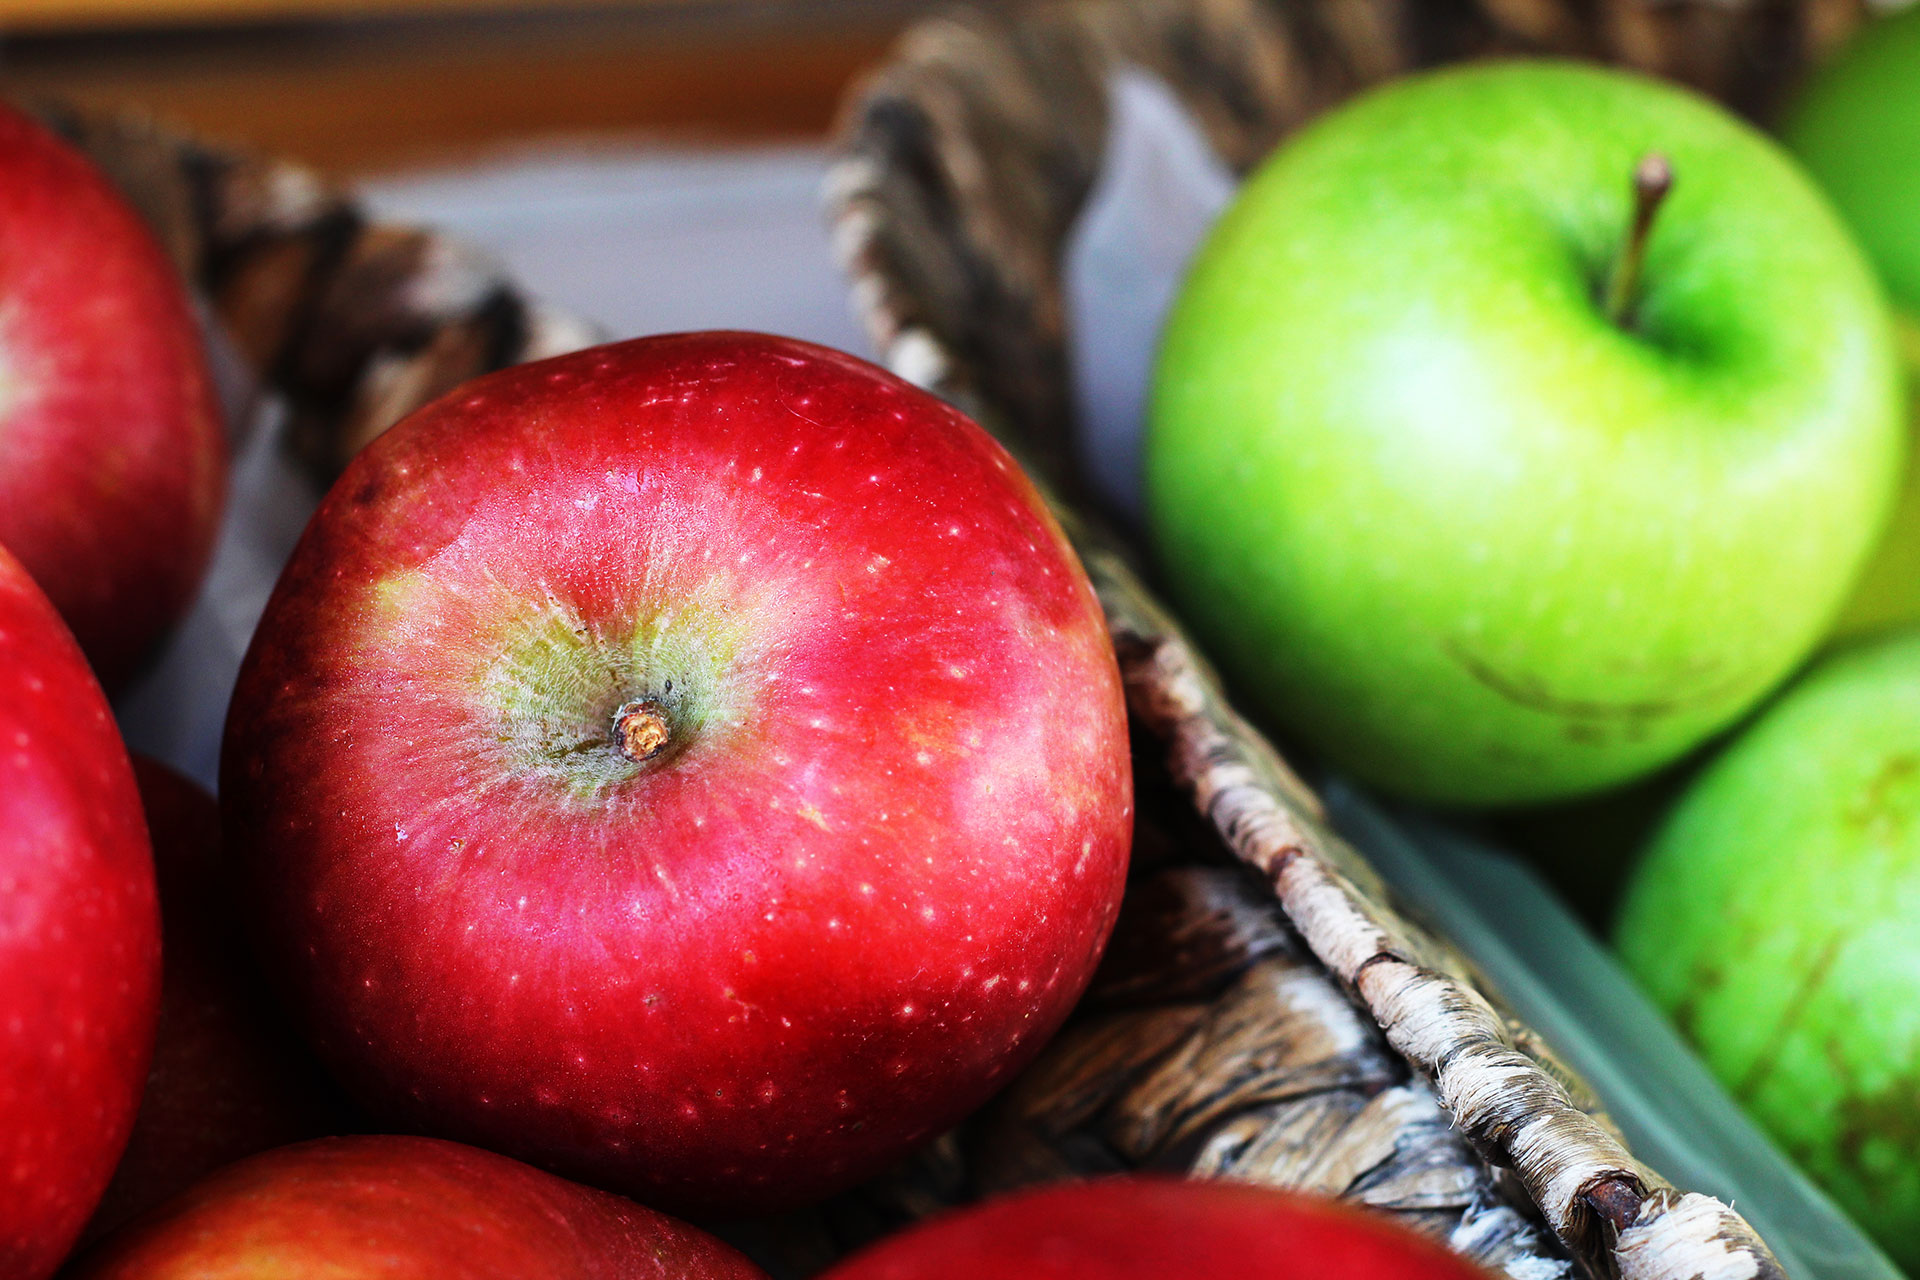 Managed services vs. outsourcing - apples to apples?